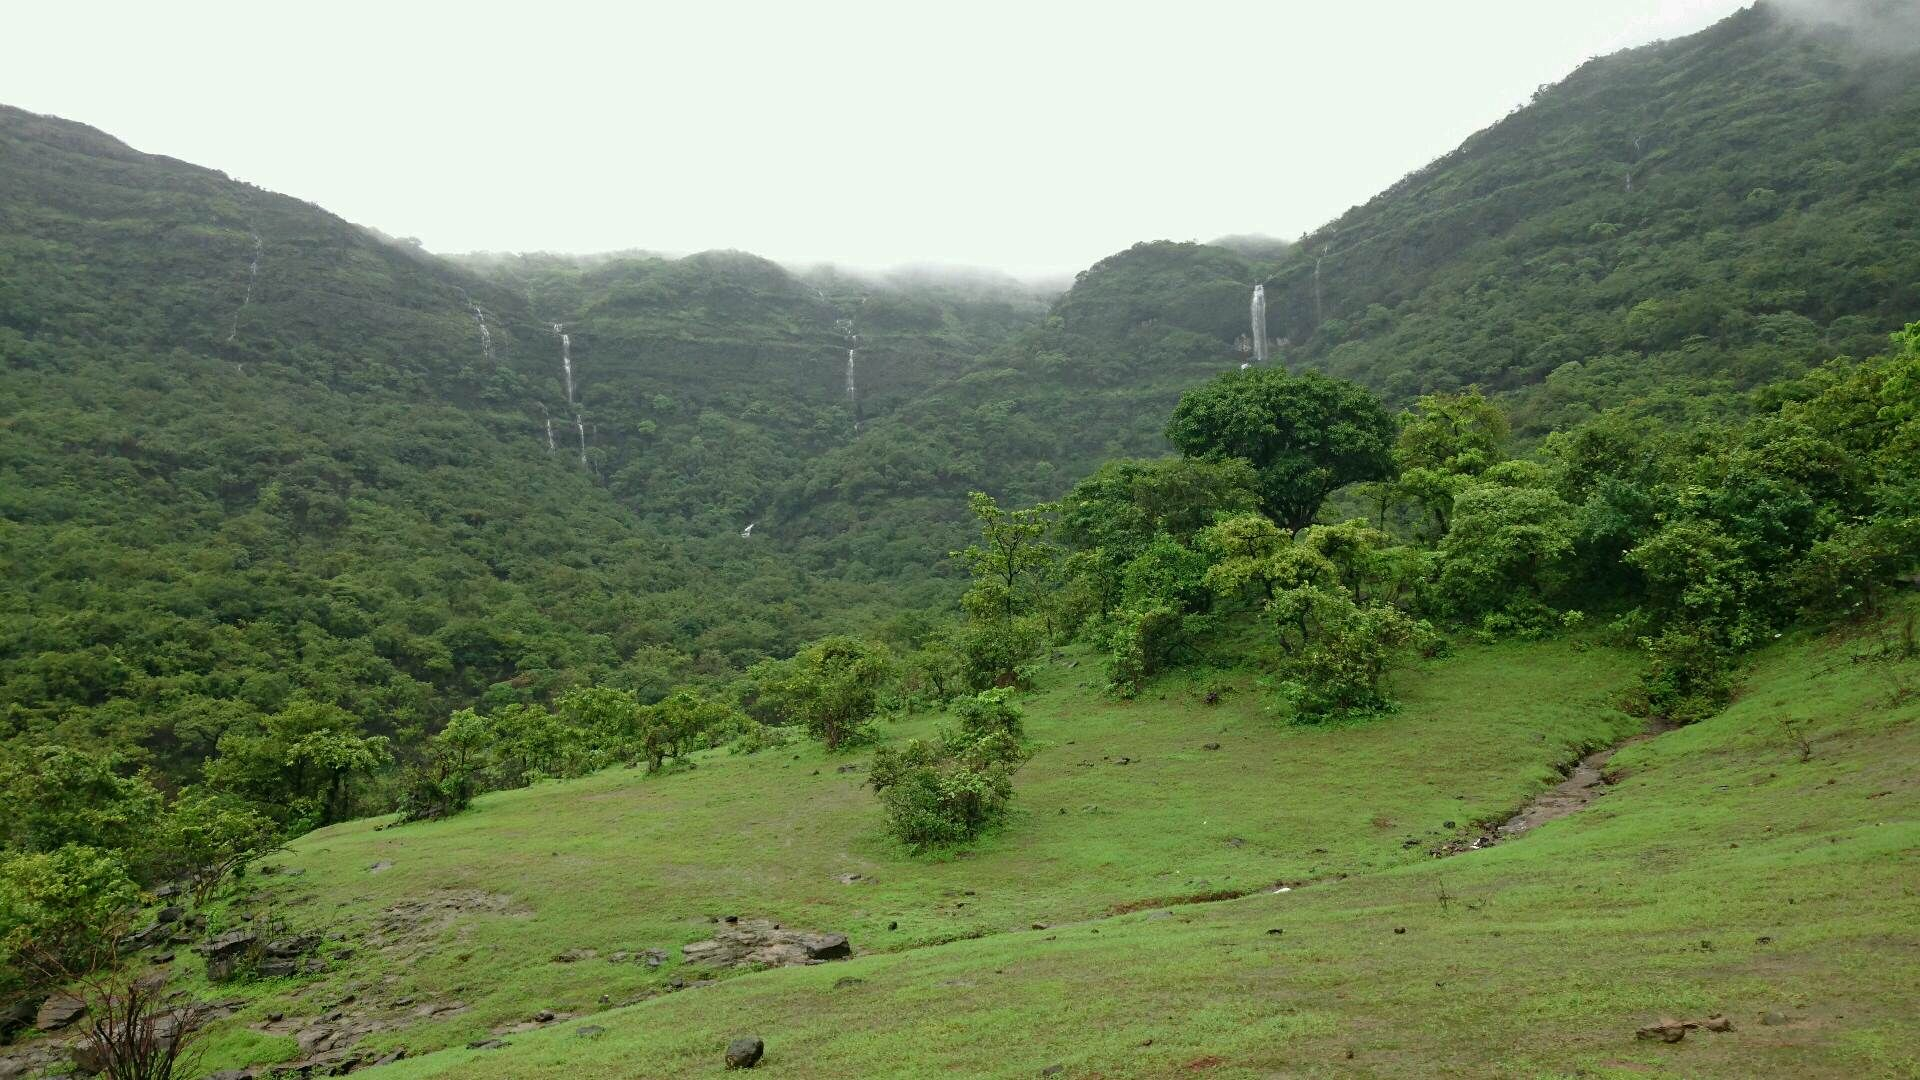 Waterfalls and greenery in the mountains of Mulshi India [OC